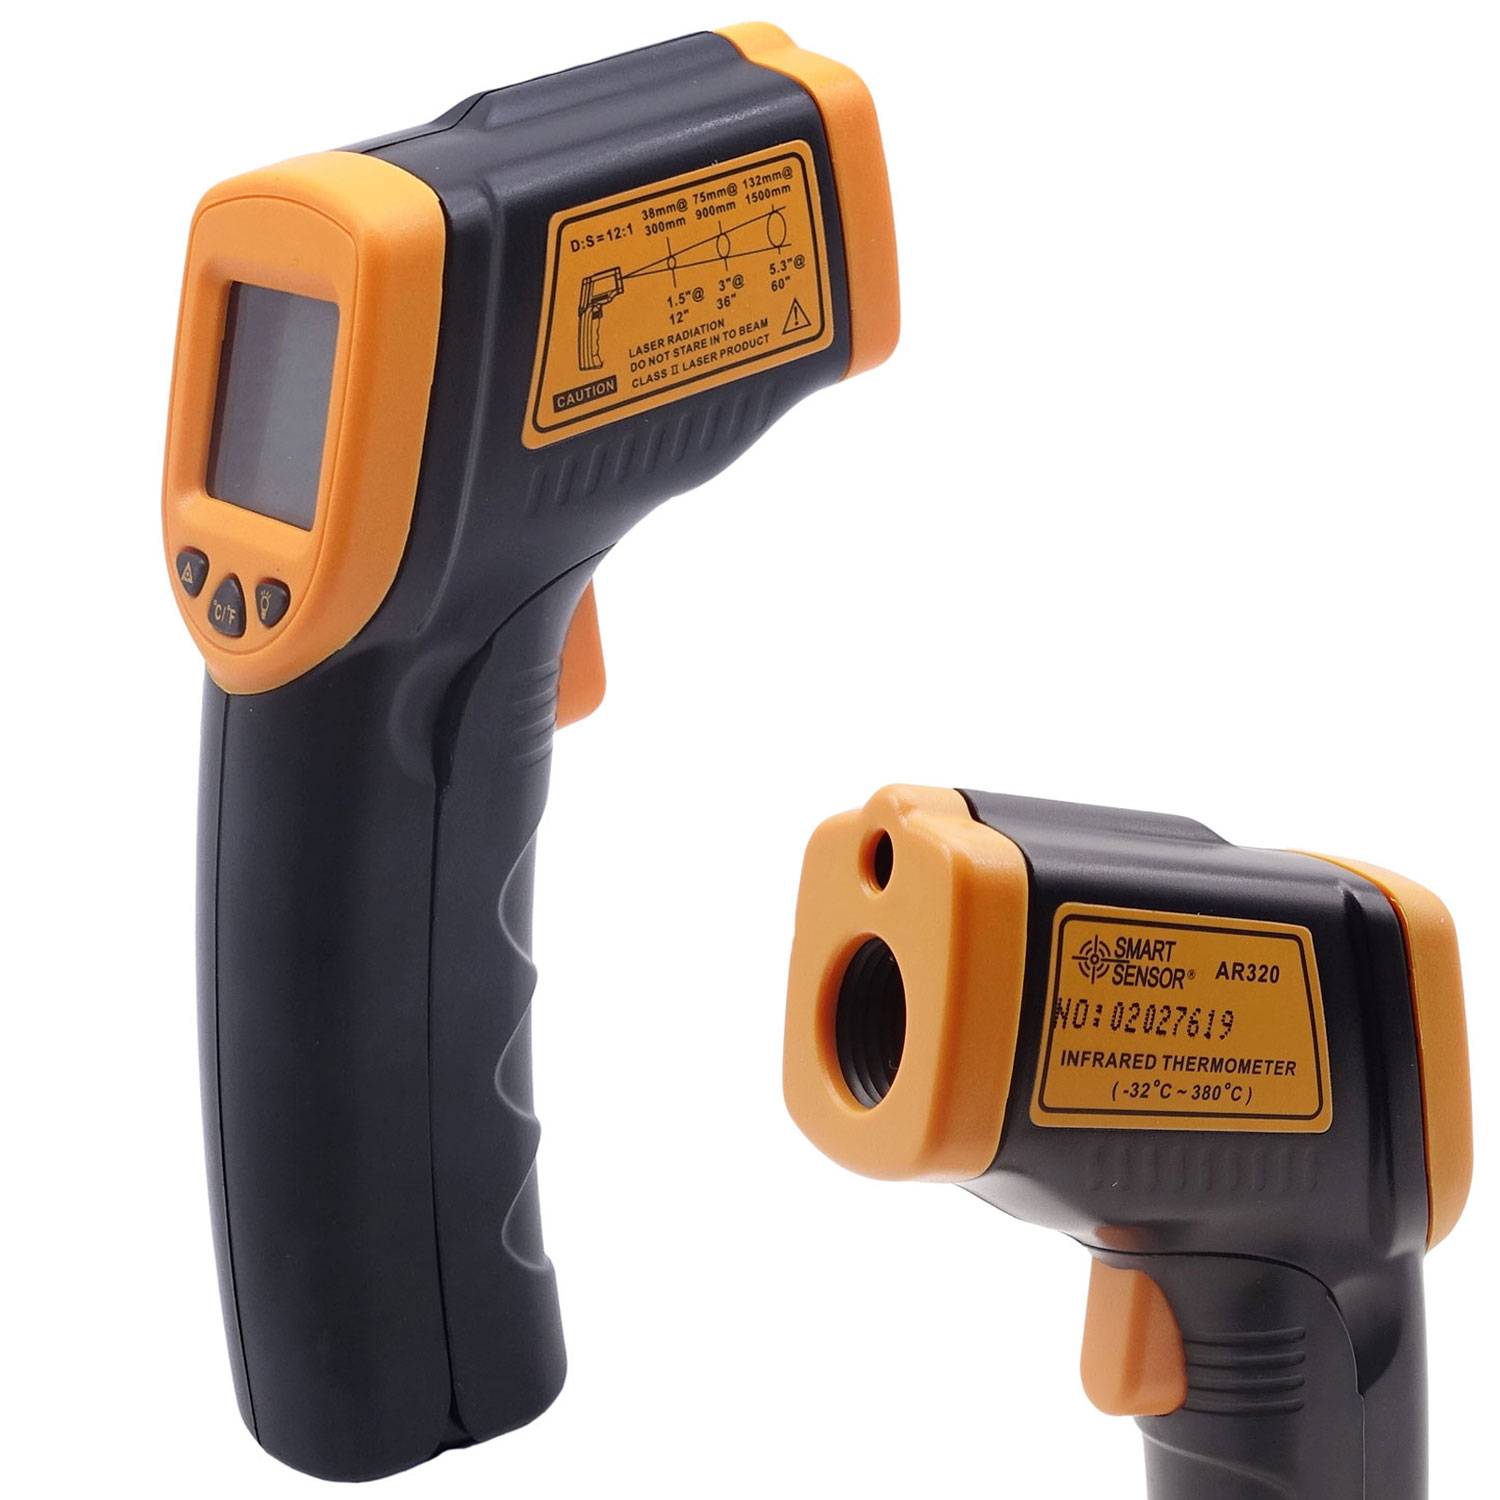 TrendBox AR320 Digital Laser Infrared Thermometer Temperature Gun Measurement IR Point Industrial Non-Contact -32~380℃/ -26~716°F with LCD Screen Food Testing Ventilation